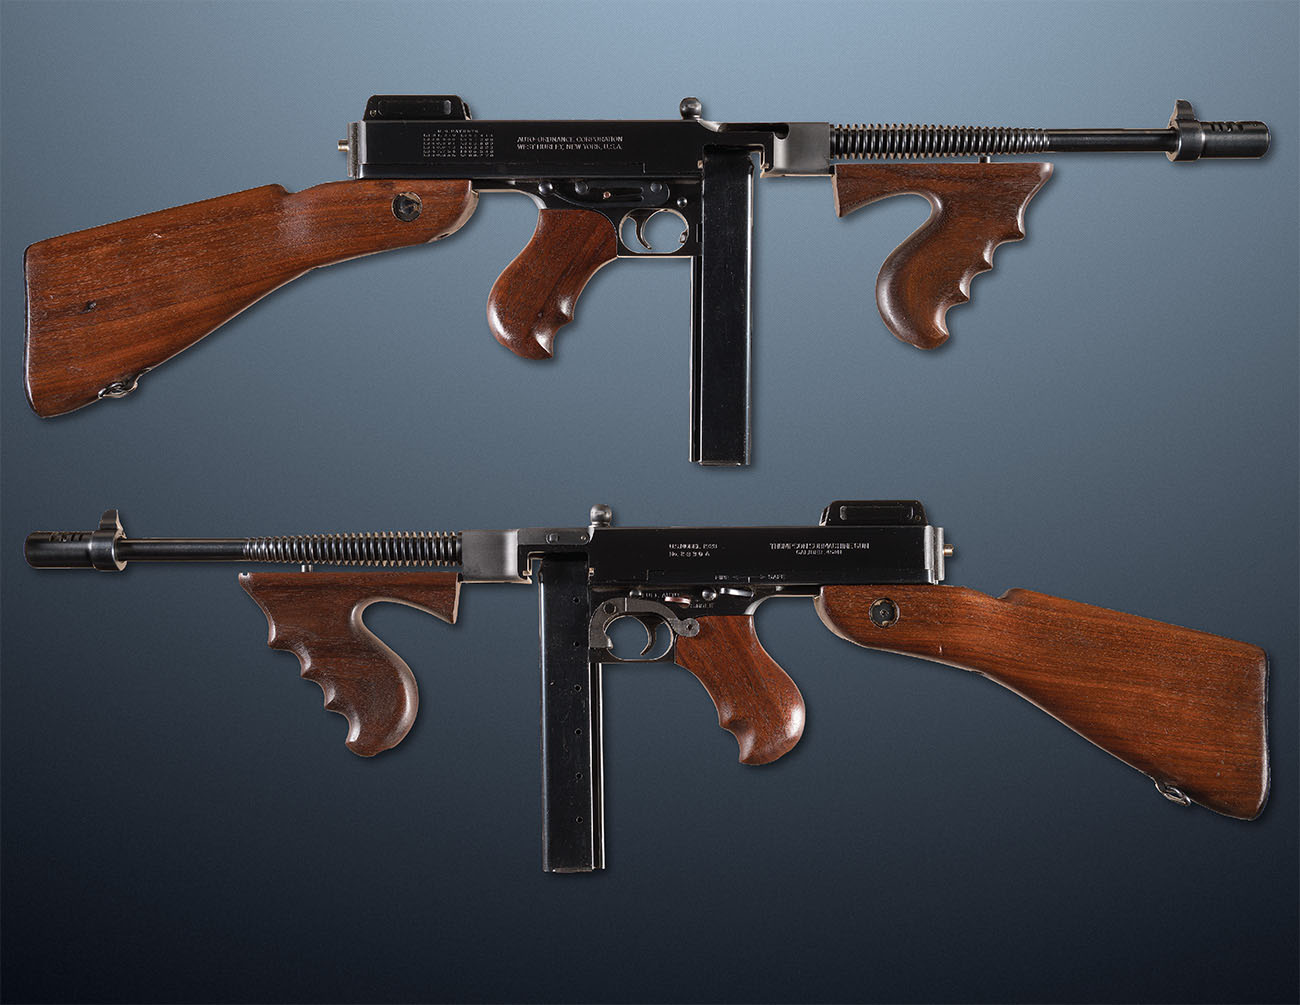 Пистолет-пулемёт Томпсона. Submachine gun M1928 Thompson